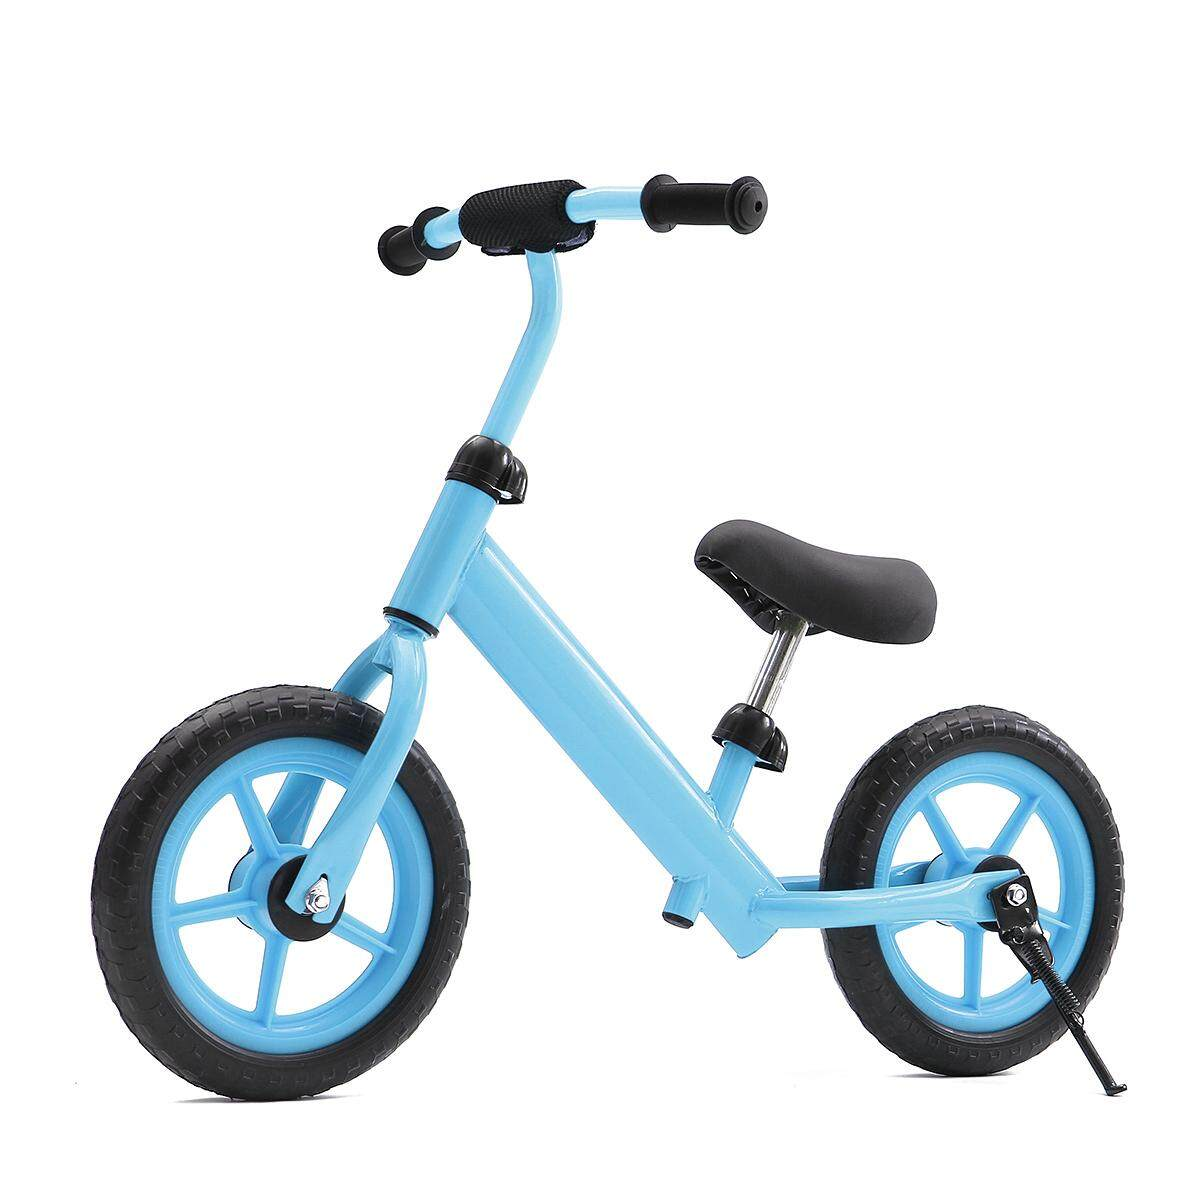 12 Balance Bike Classic Kids No-Pedal Learn To Ride Pre Bike w/ Adjustable Seat Blue - intl